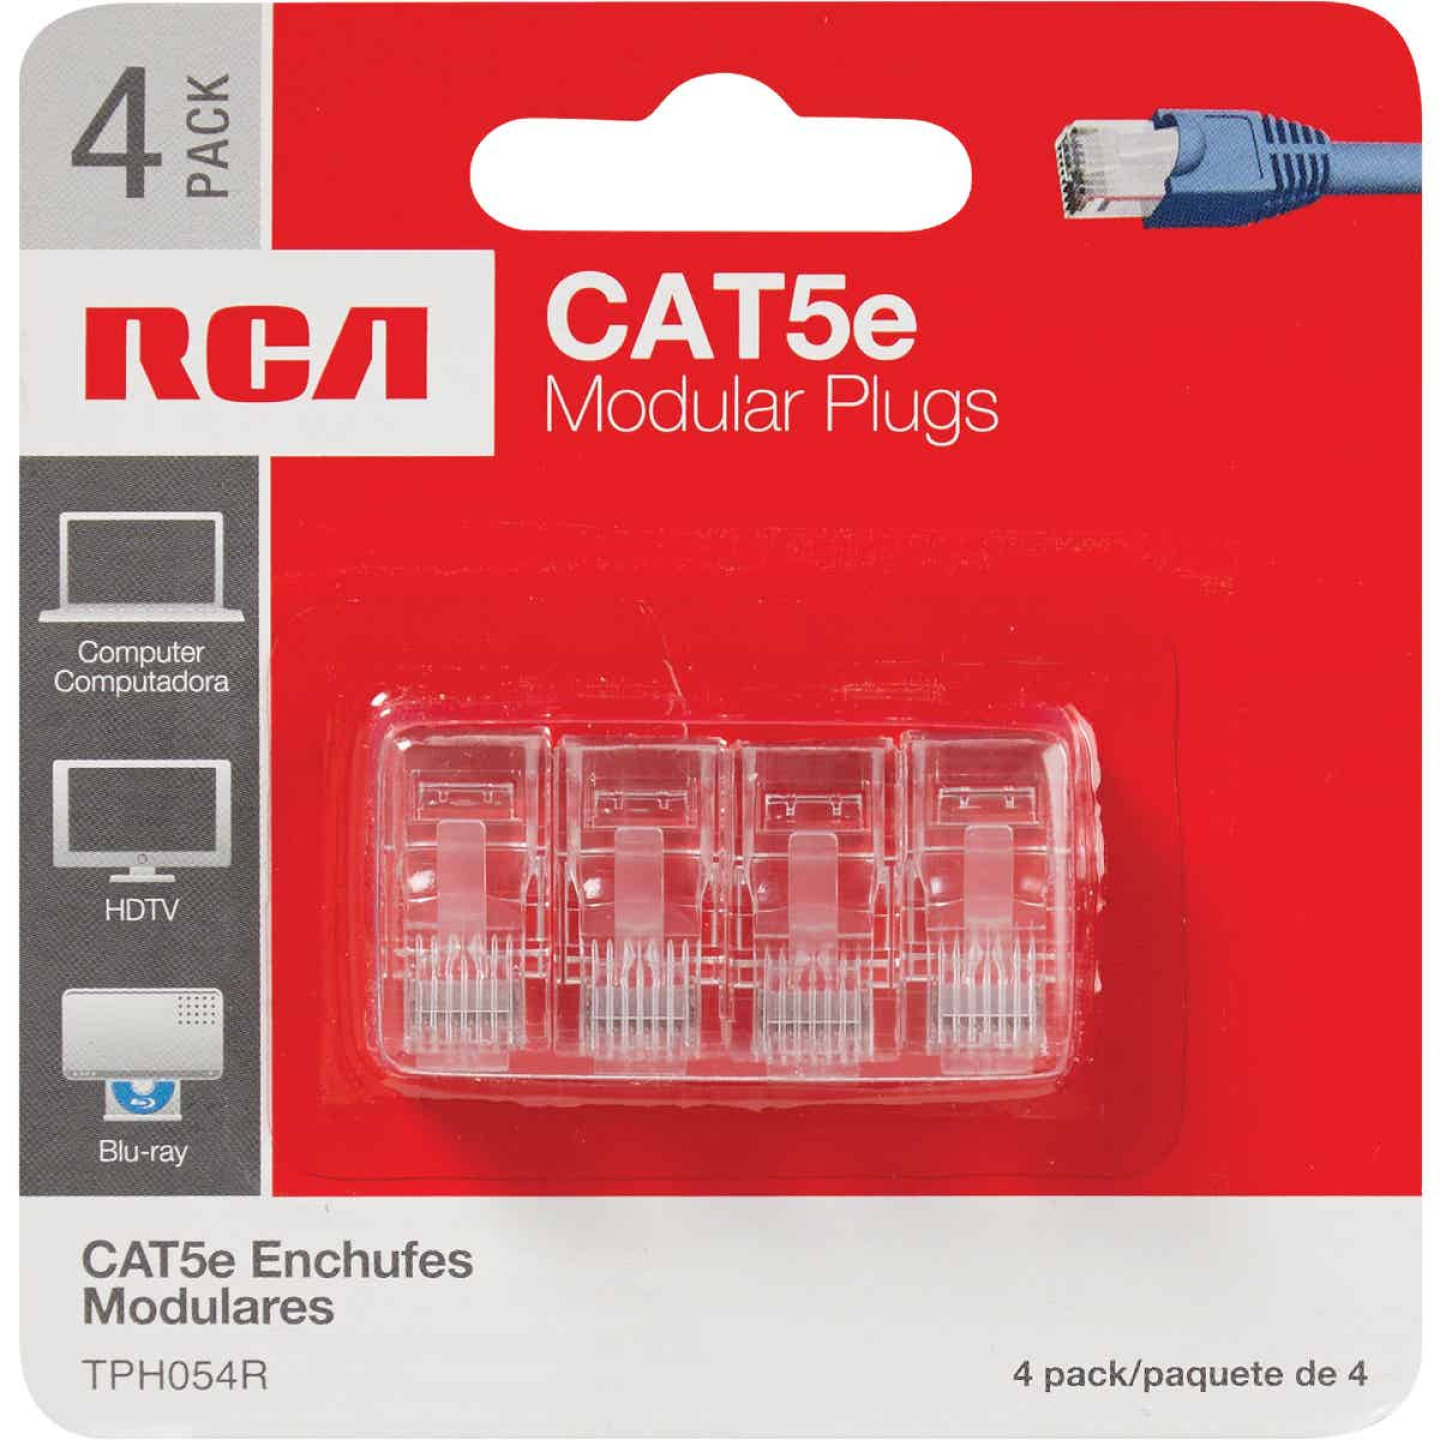 RCA CAT-5E Clear Modular Plug Connector (4-Pack) Image 2